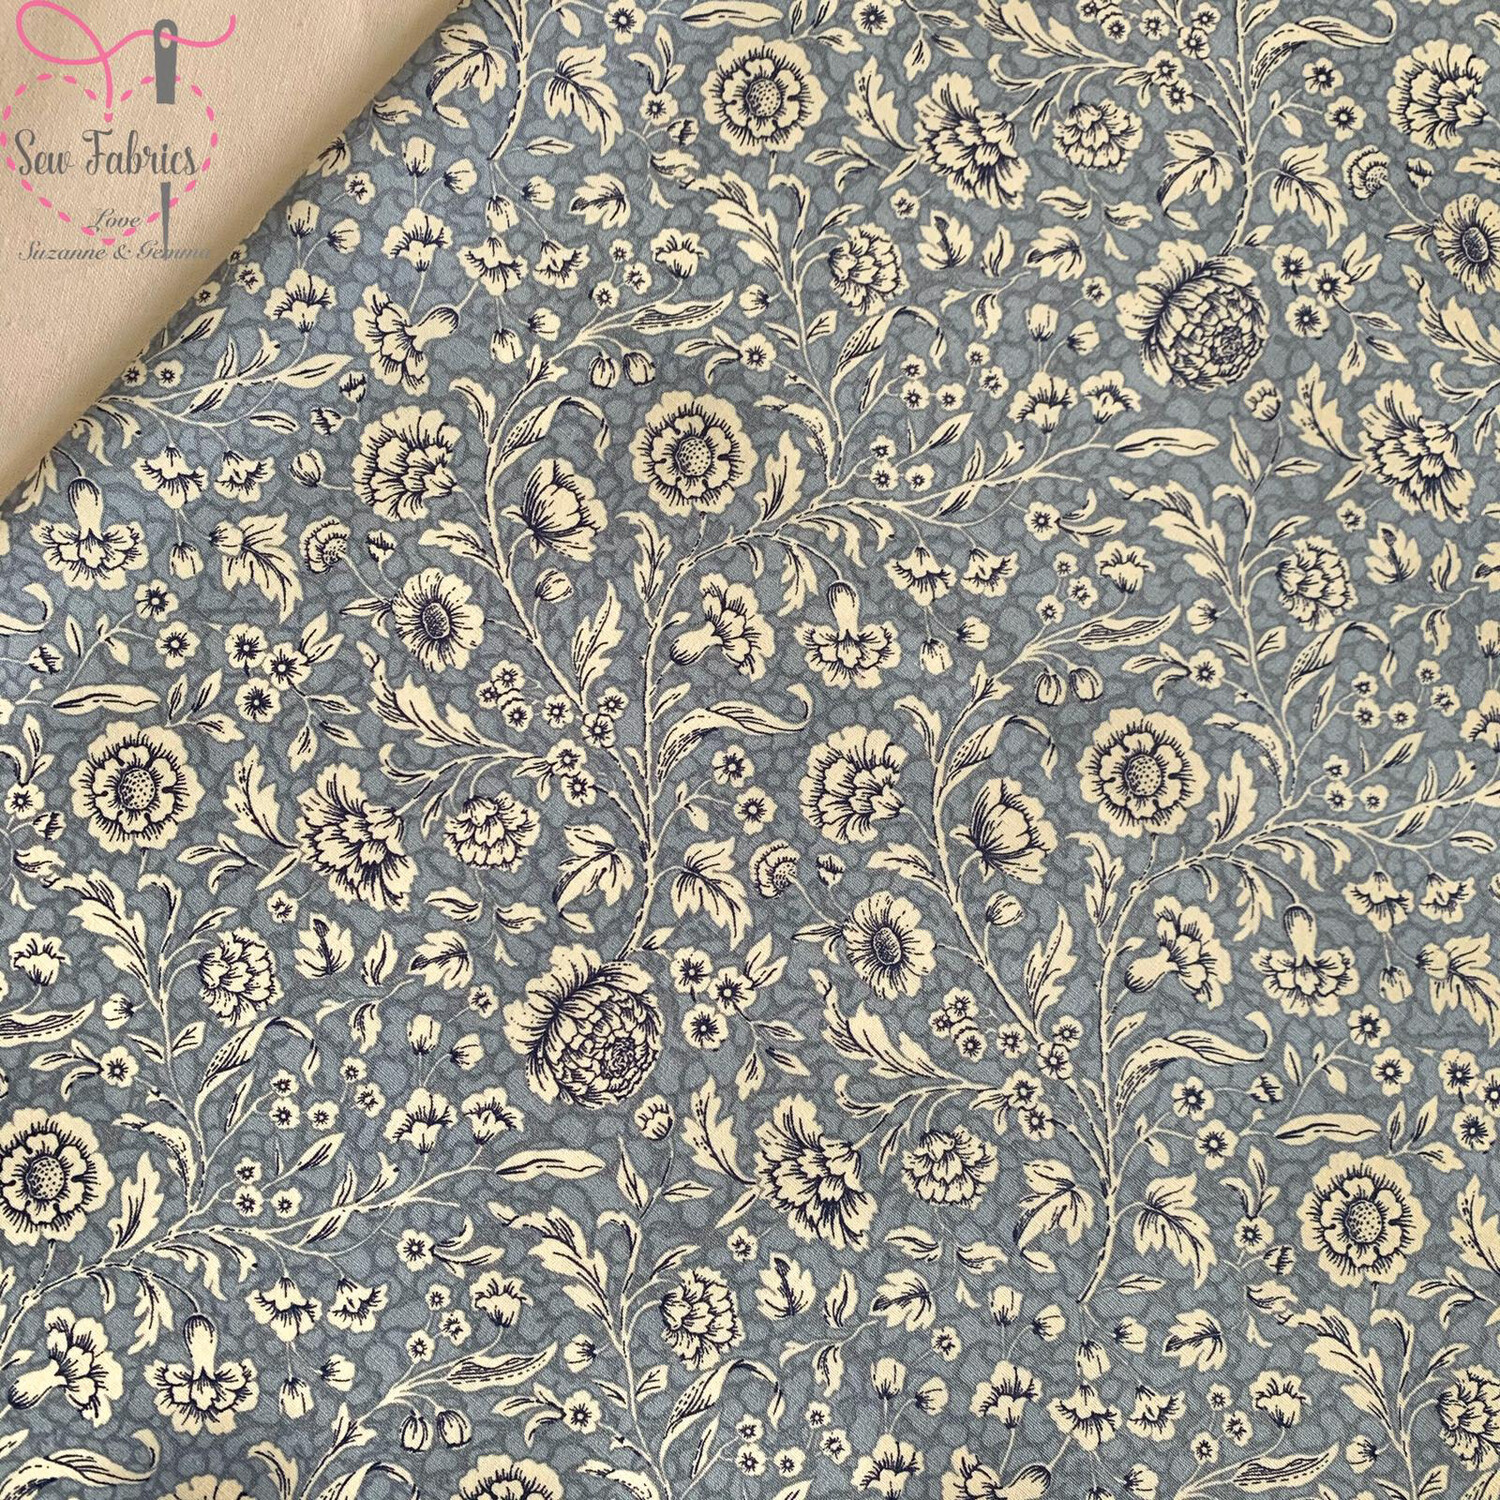 Rose and Hubble Delph Blue Floral Breeze Fabric Vintage Floral 100% Cotton Poplin Flower Material Sewing